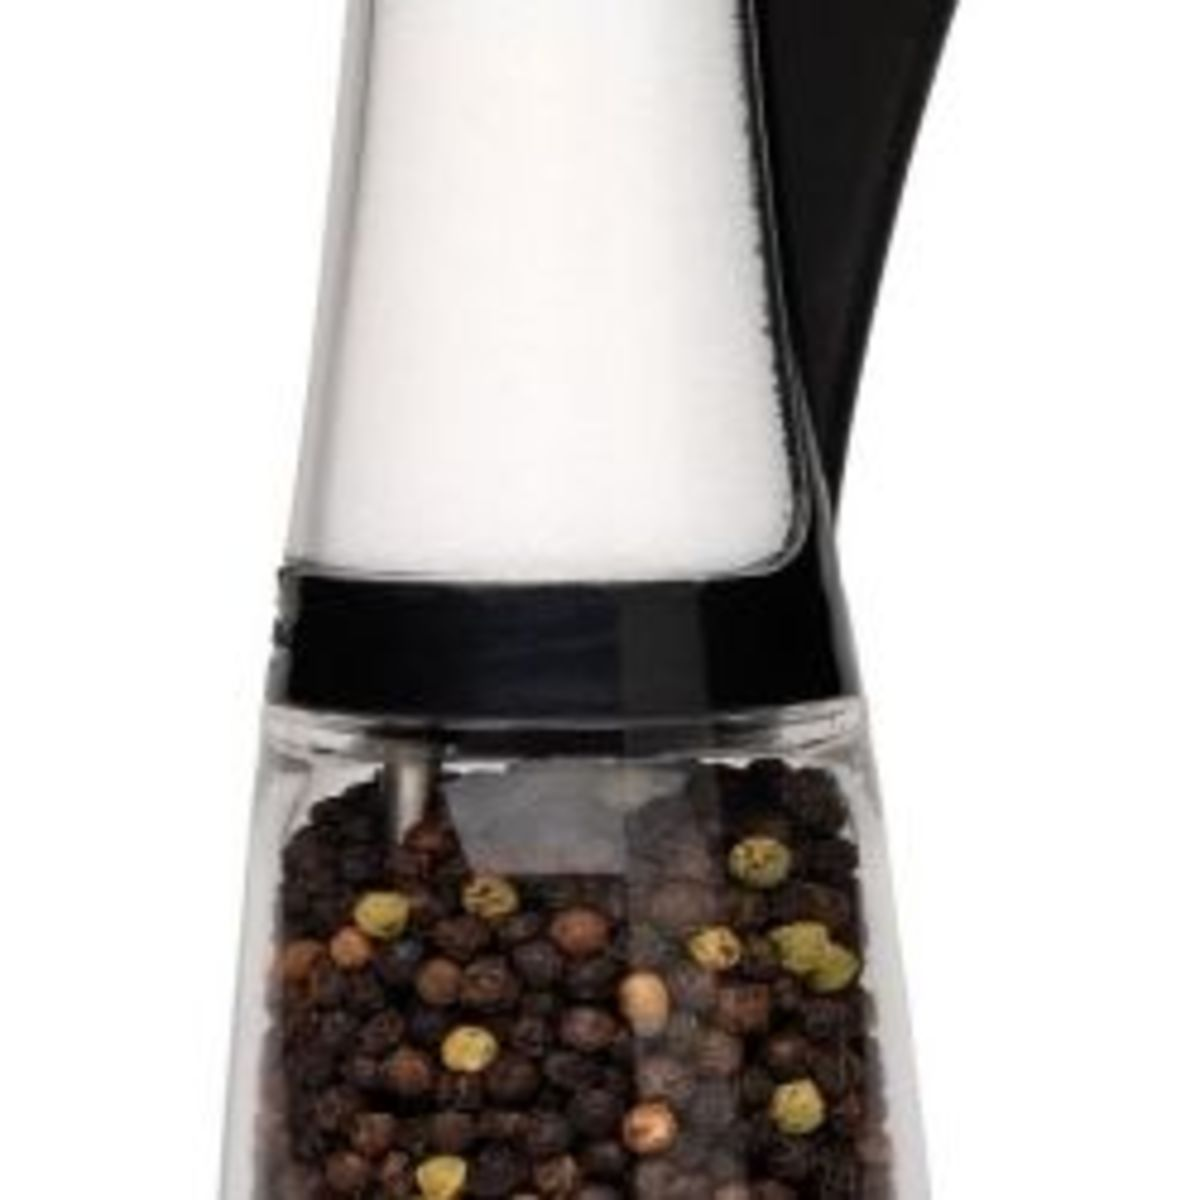 Chef'n salt mill and pepper grinder